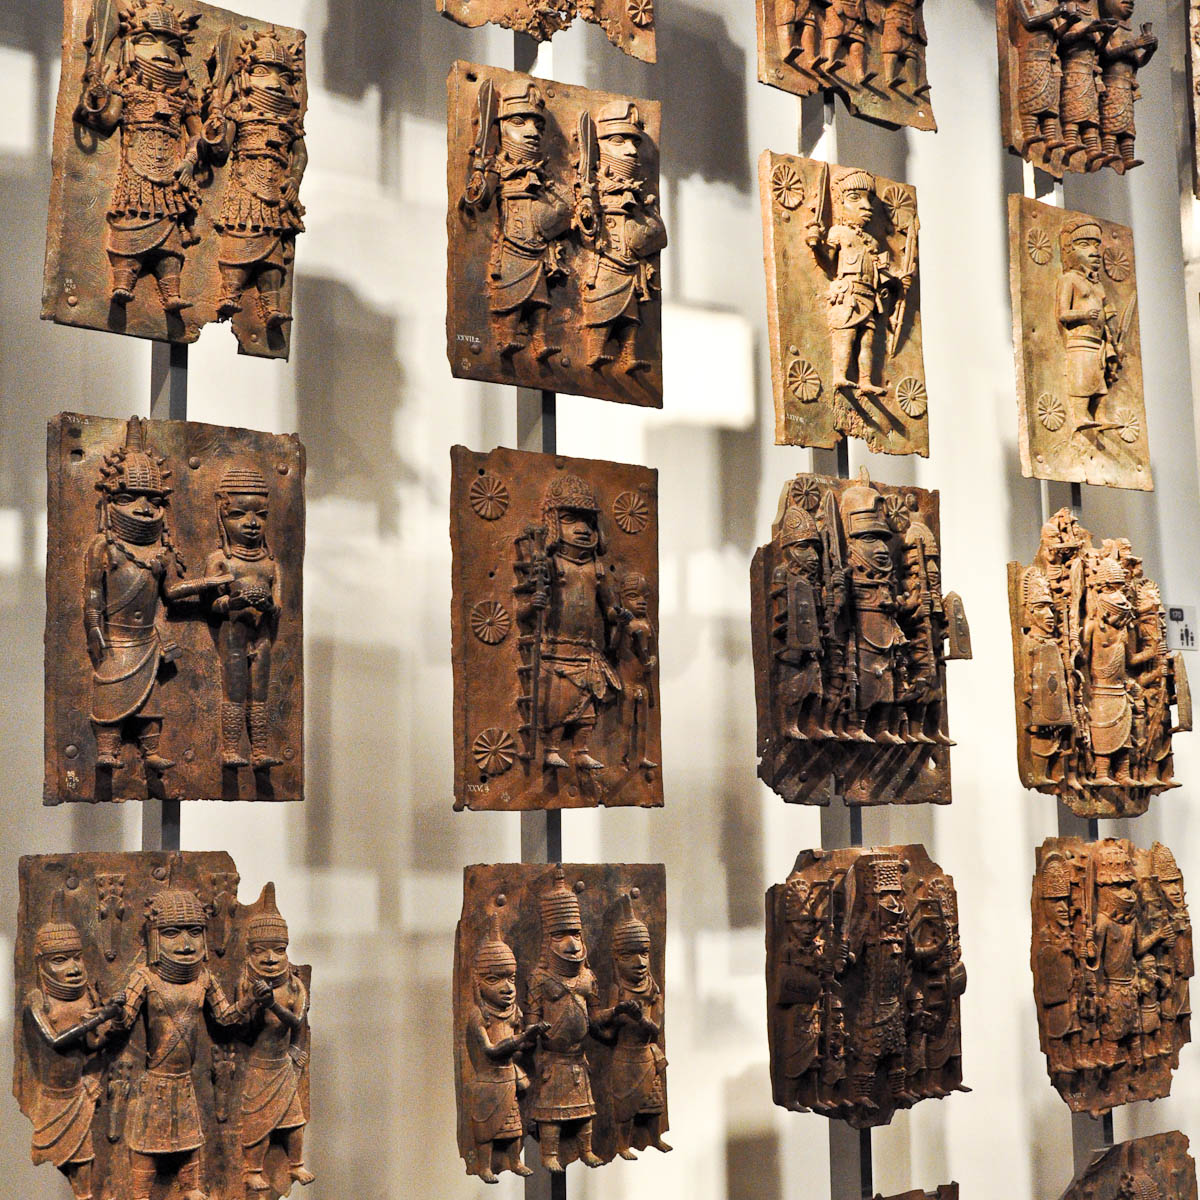 The Benin plaques, The British Museum, London, UK